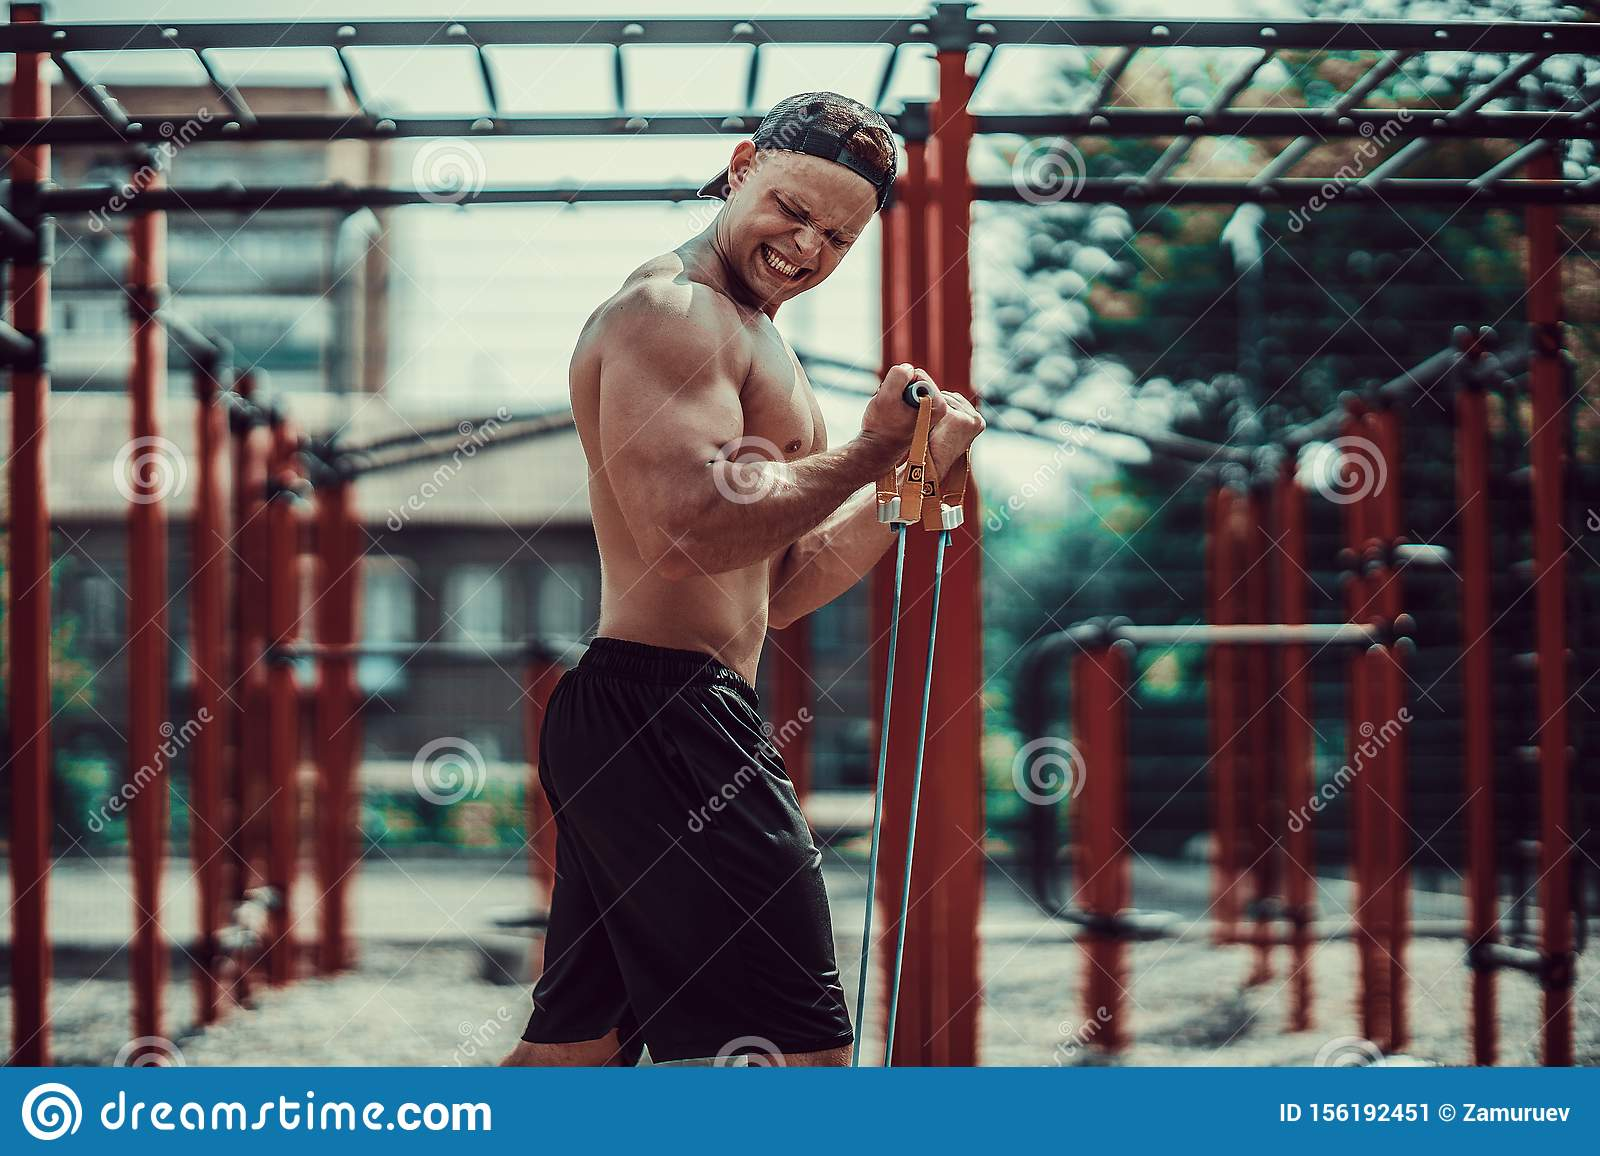 Workout Men Posing Outside. Sports And Fitness Concept